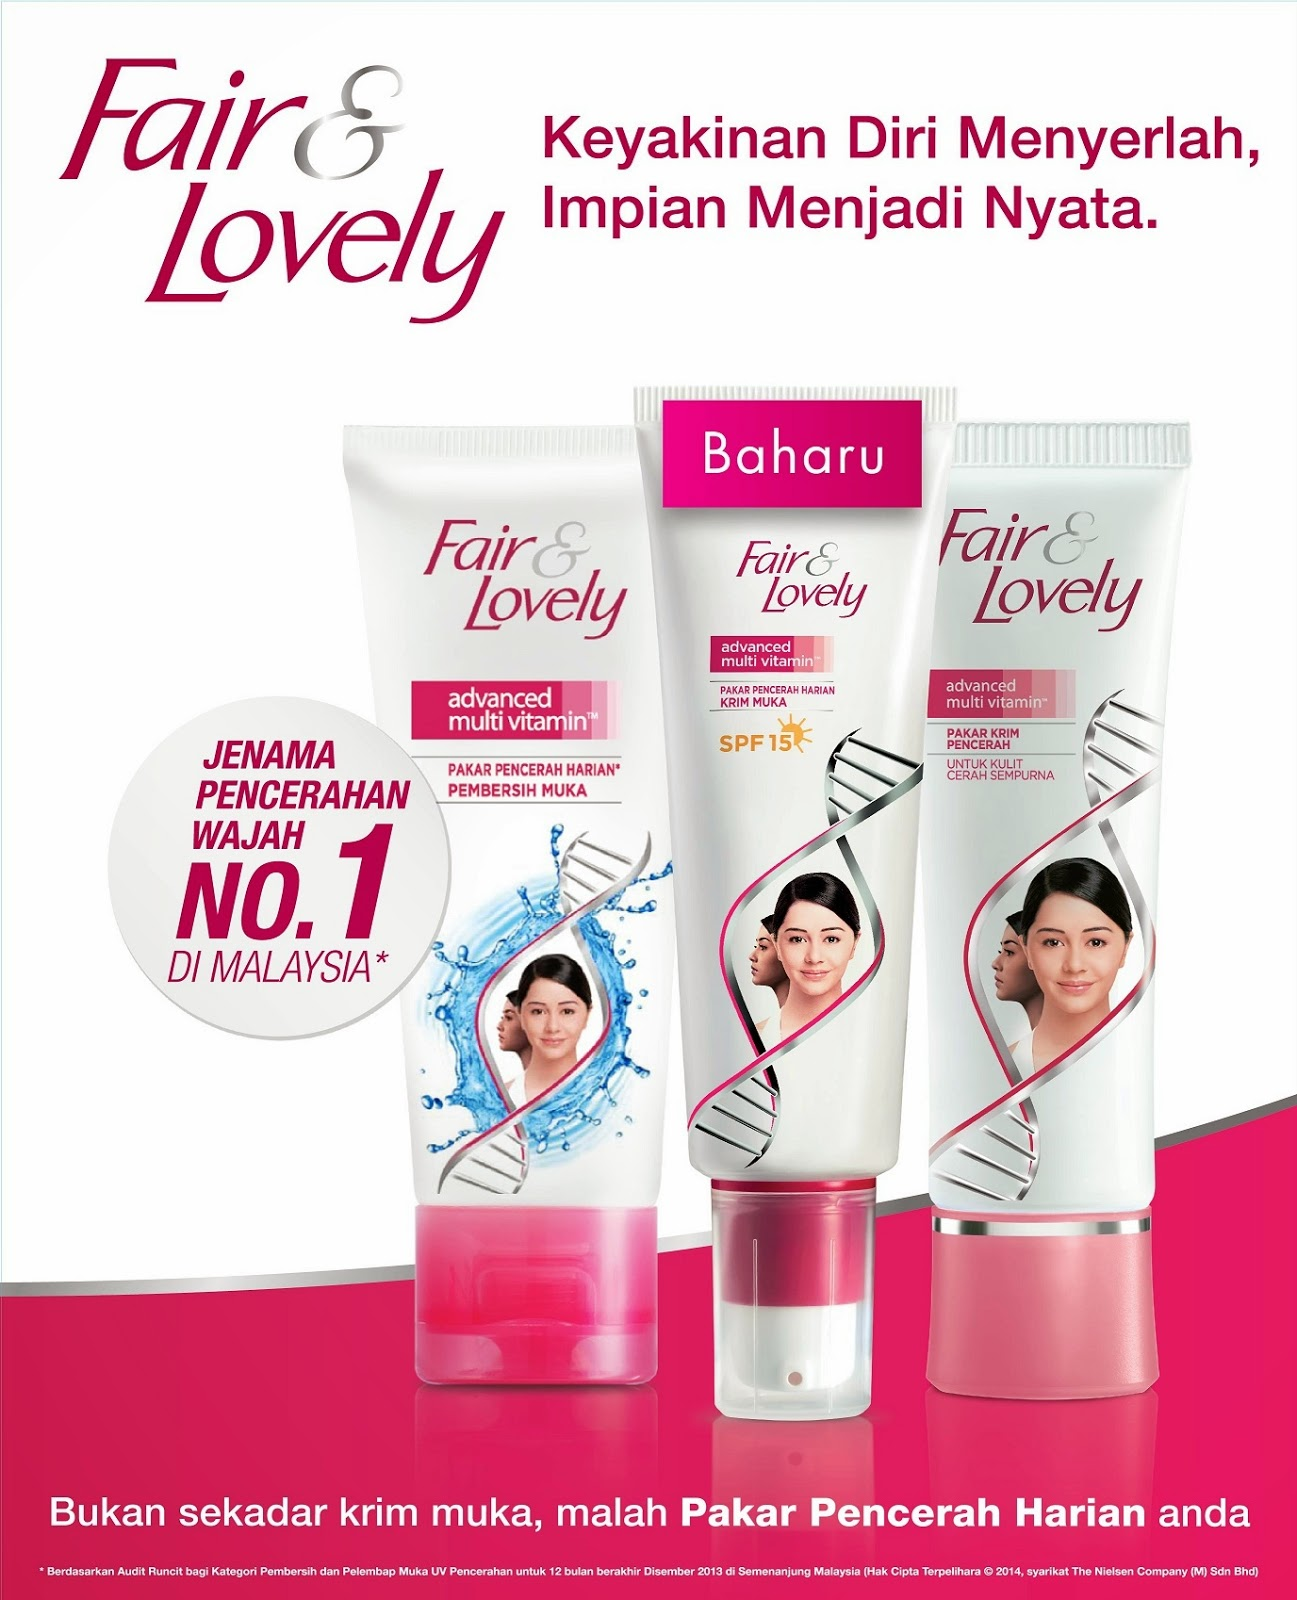 strategies of fair n lovely Fair & lovely loses 5 crore fairness challenge to cbi's clean in new delhi office of cbi claimed that their 'clean chit' was more effective than fair & lovely.